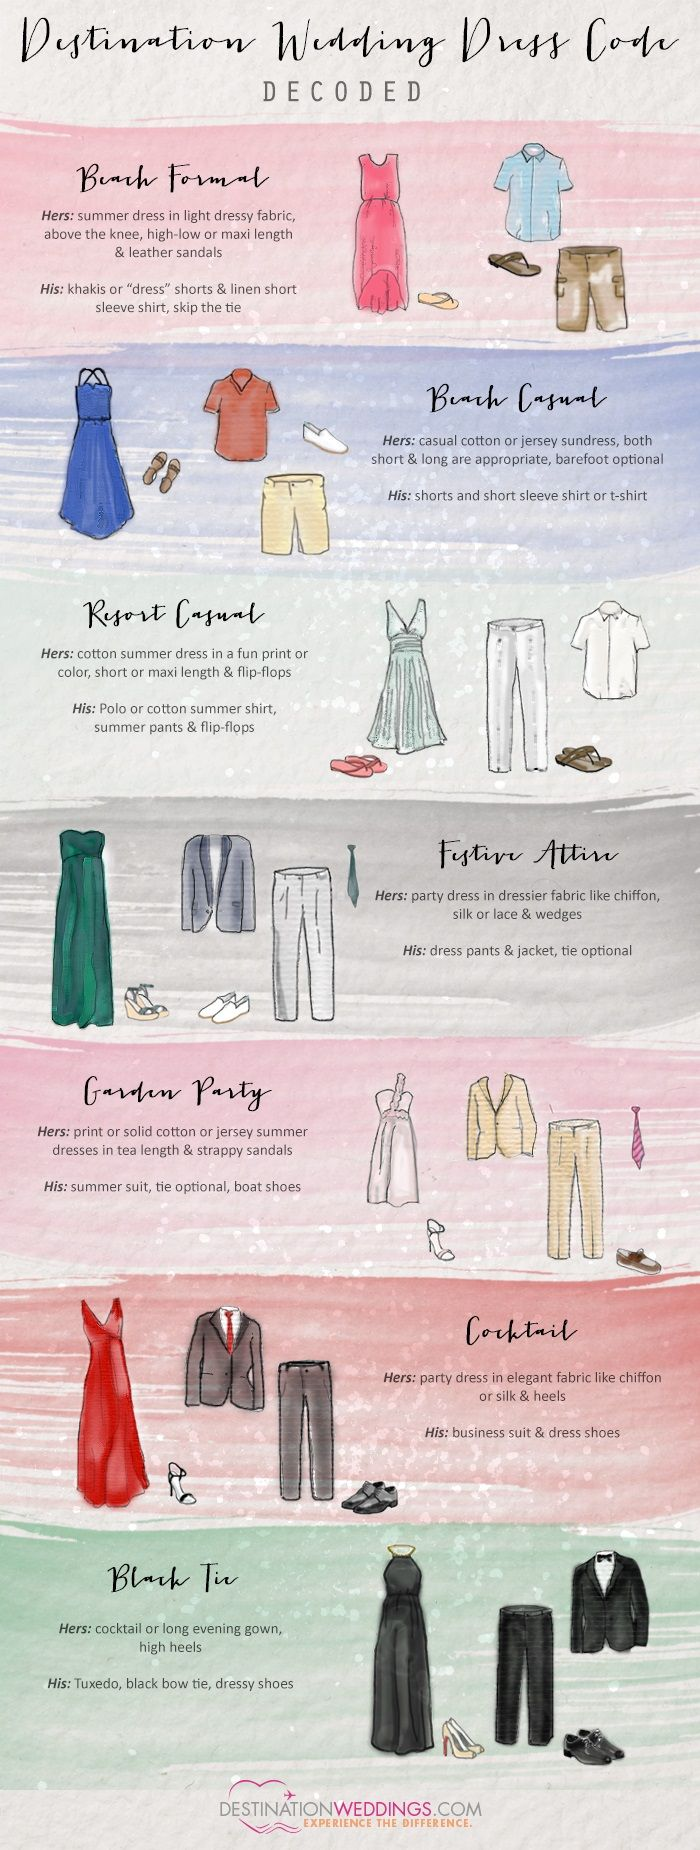 Dress codes for #Weddings de-mystified #infographic #fashion